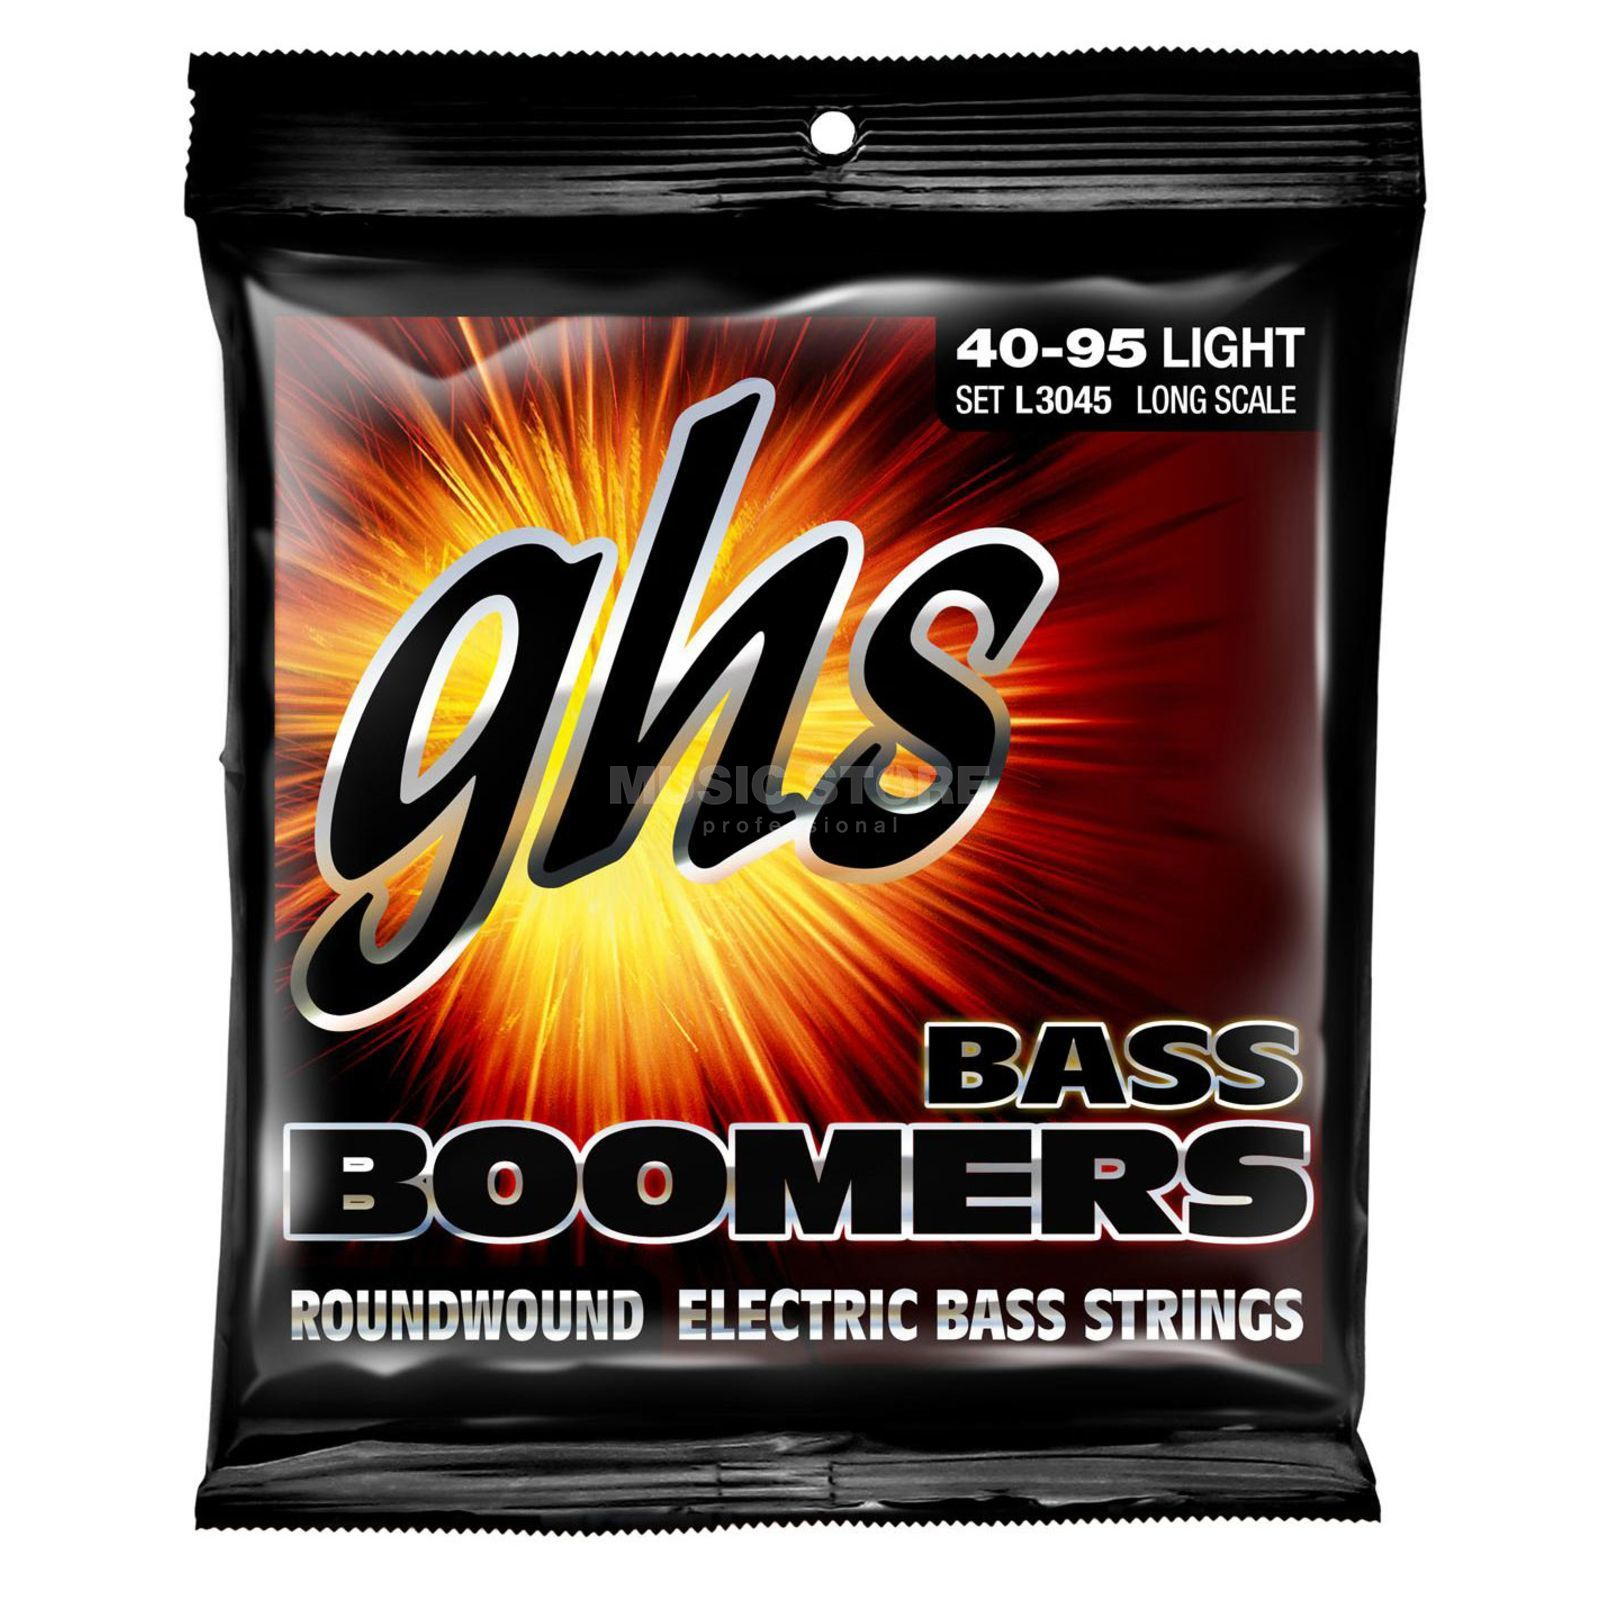 GHS E-Bas,4er,40-95,Boomers Roundwound Long Scale Product Image